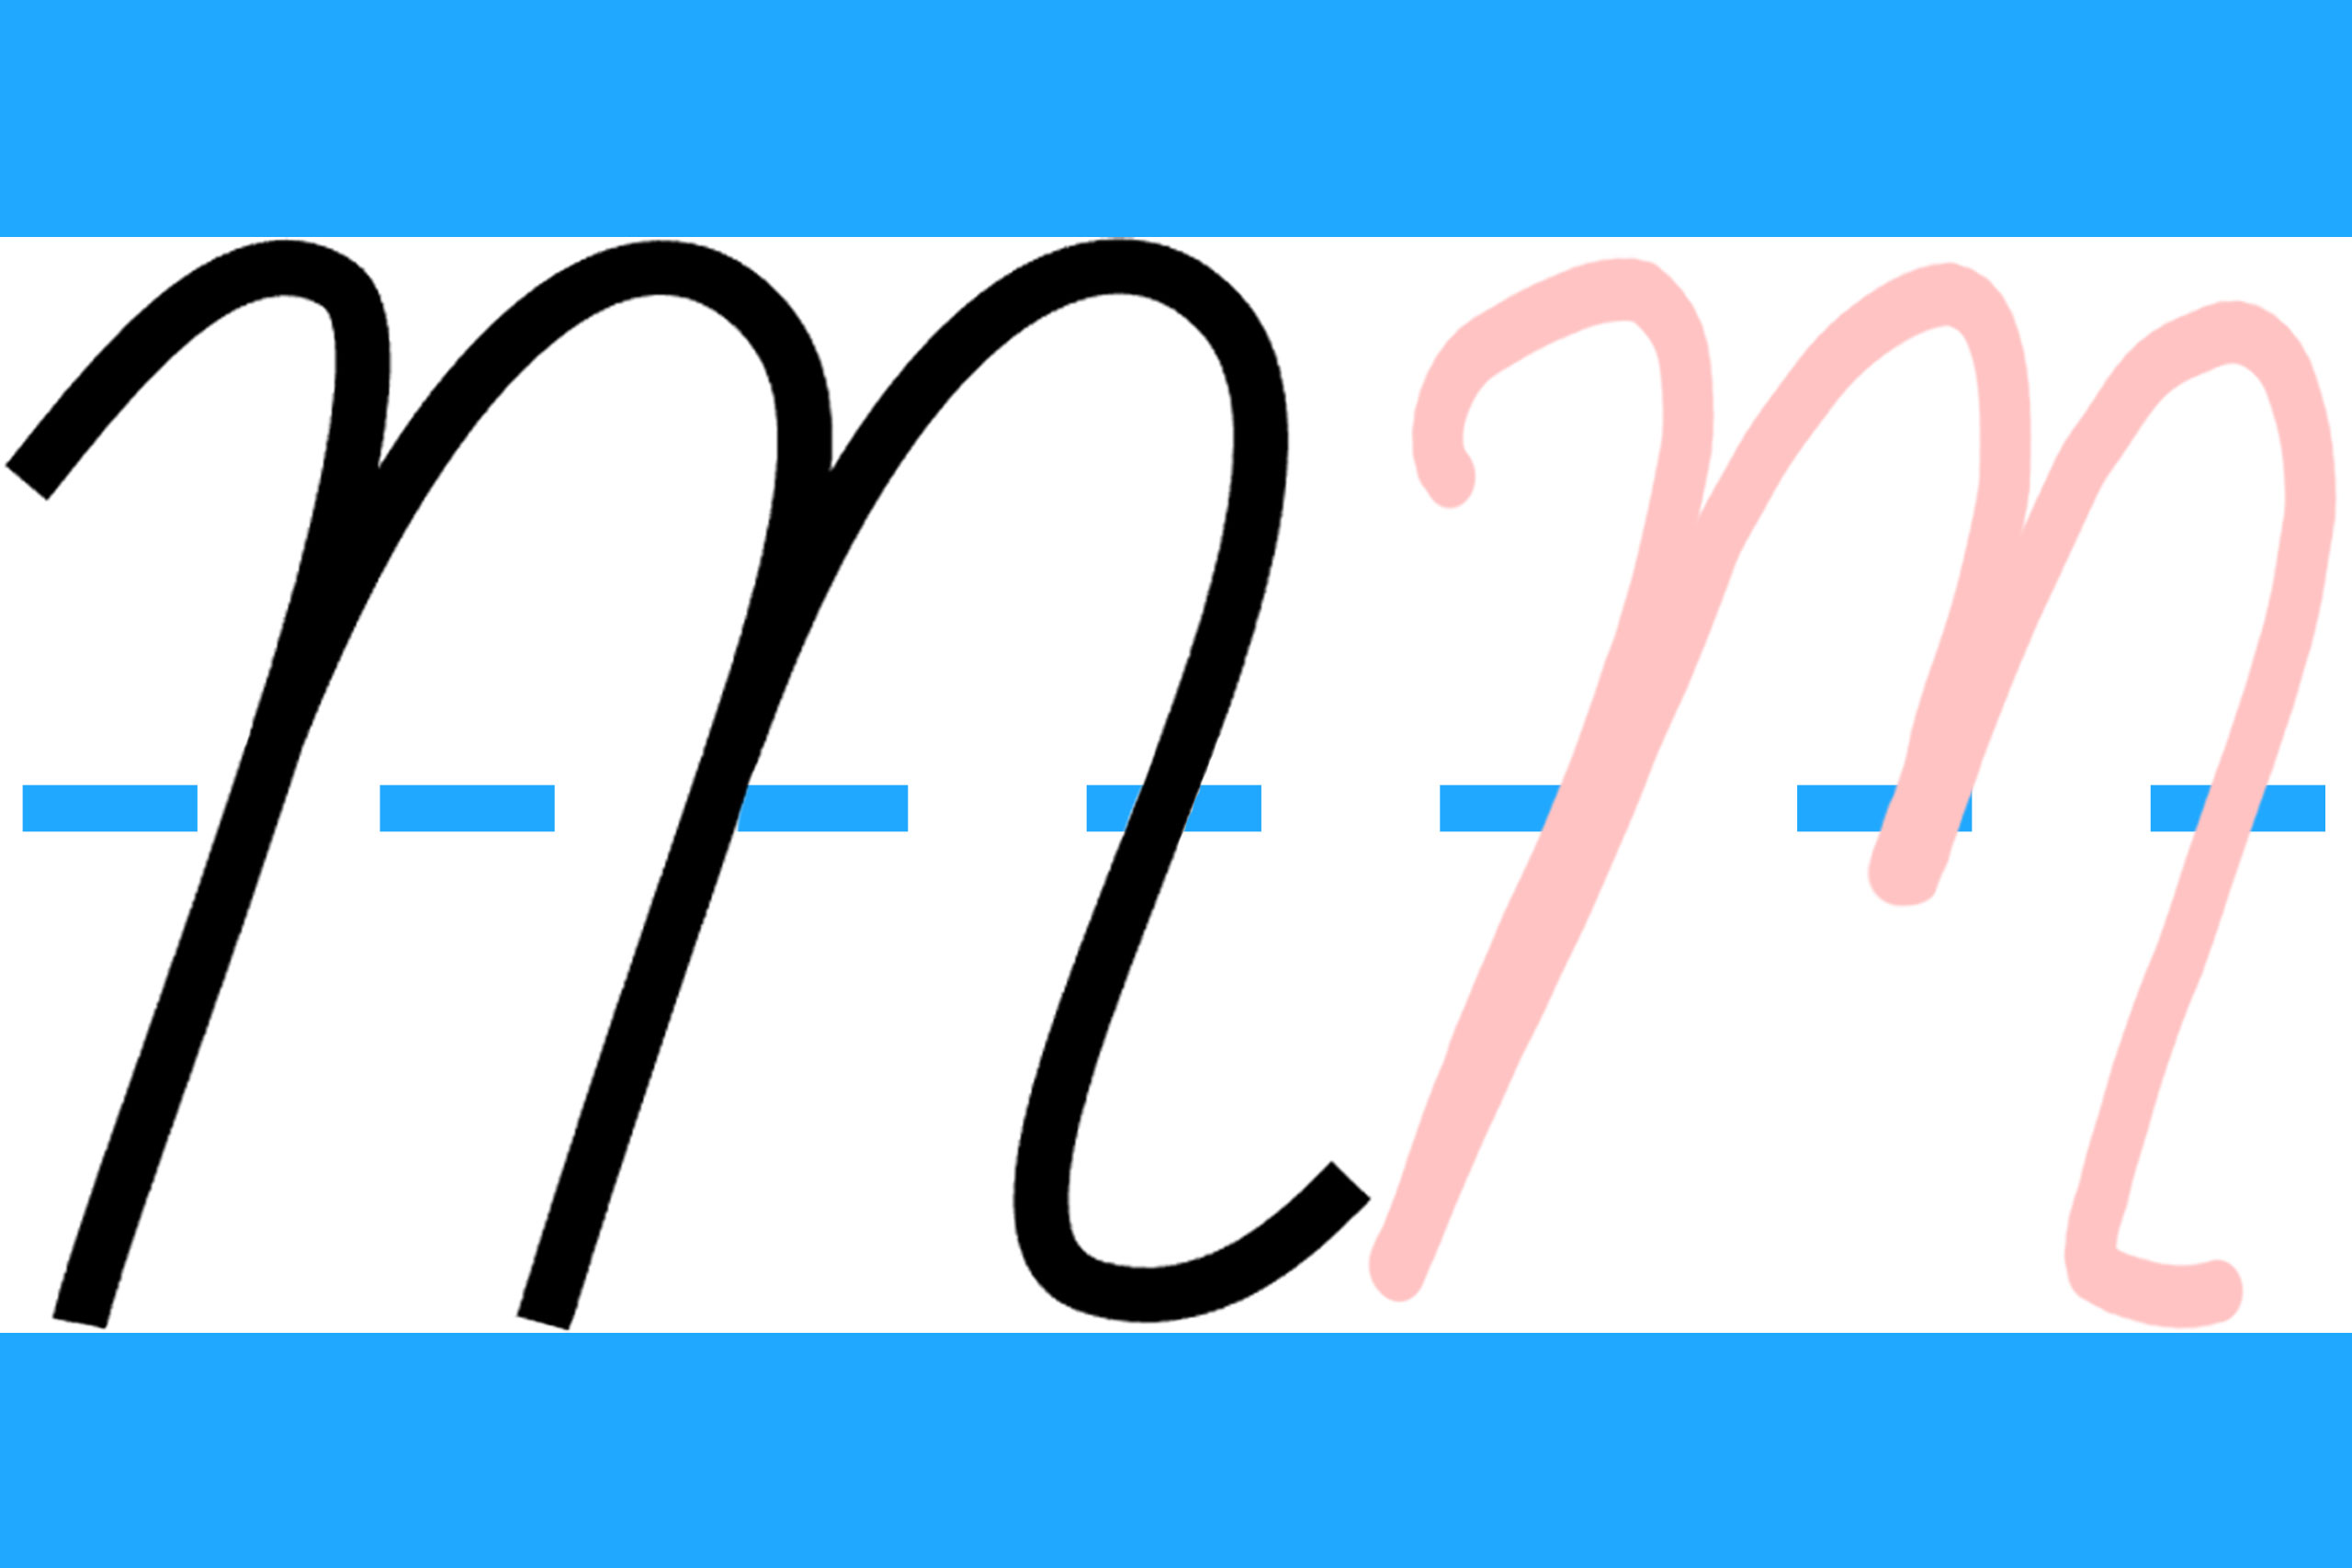 Cursive Characters For Facebook